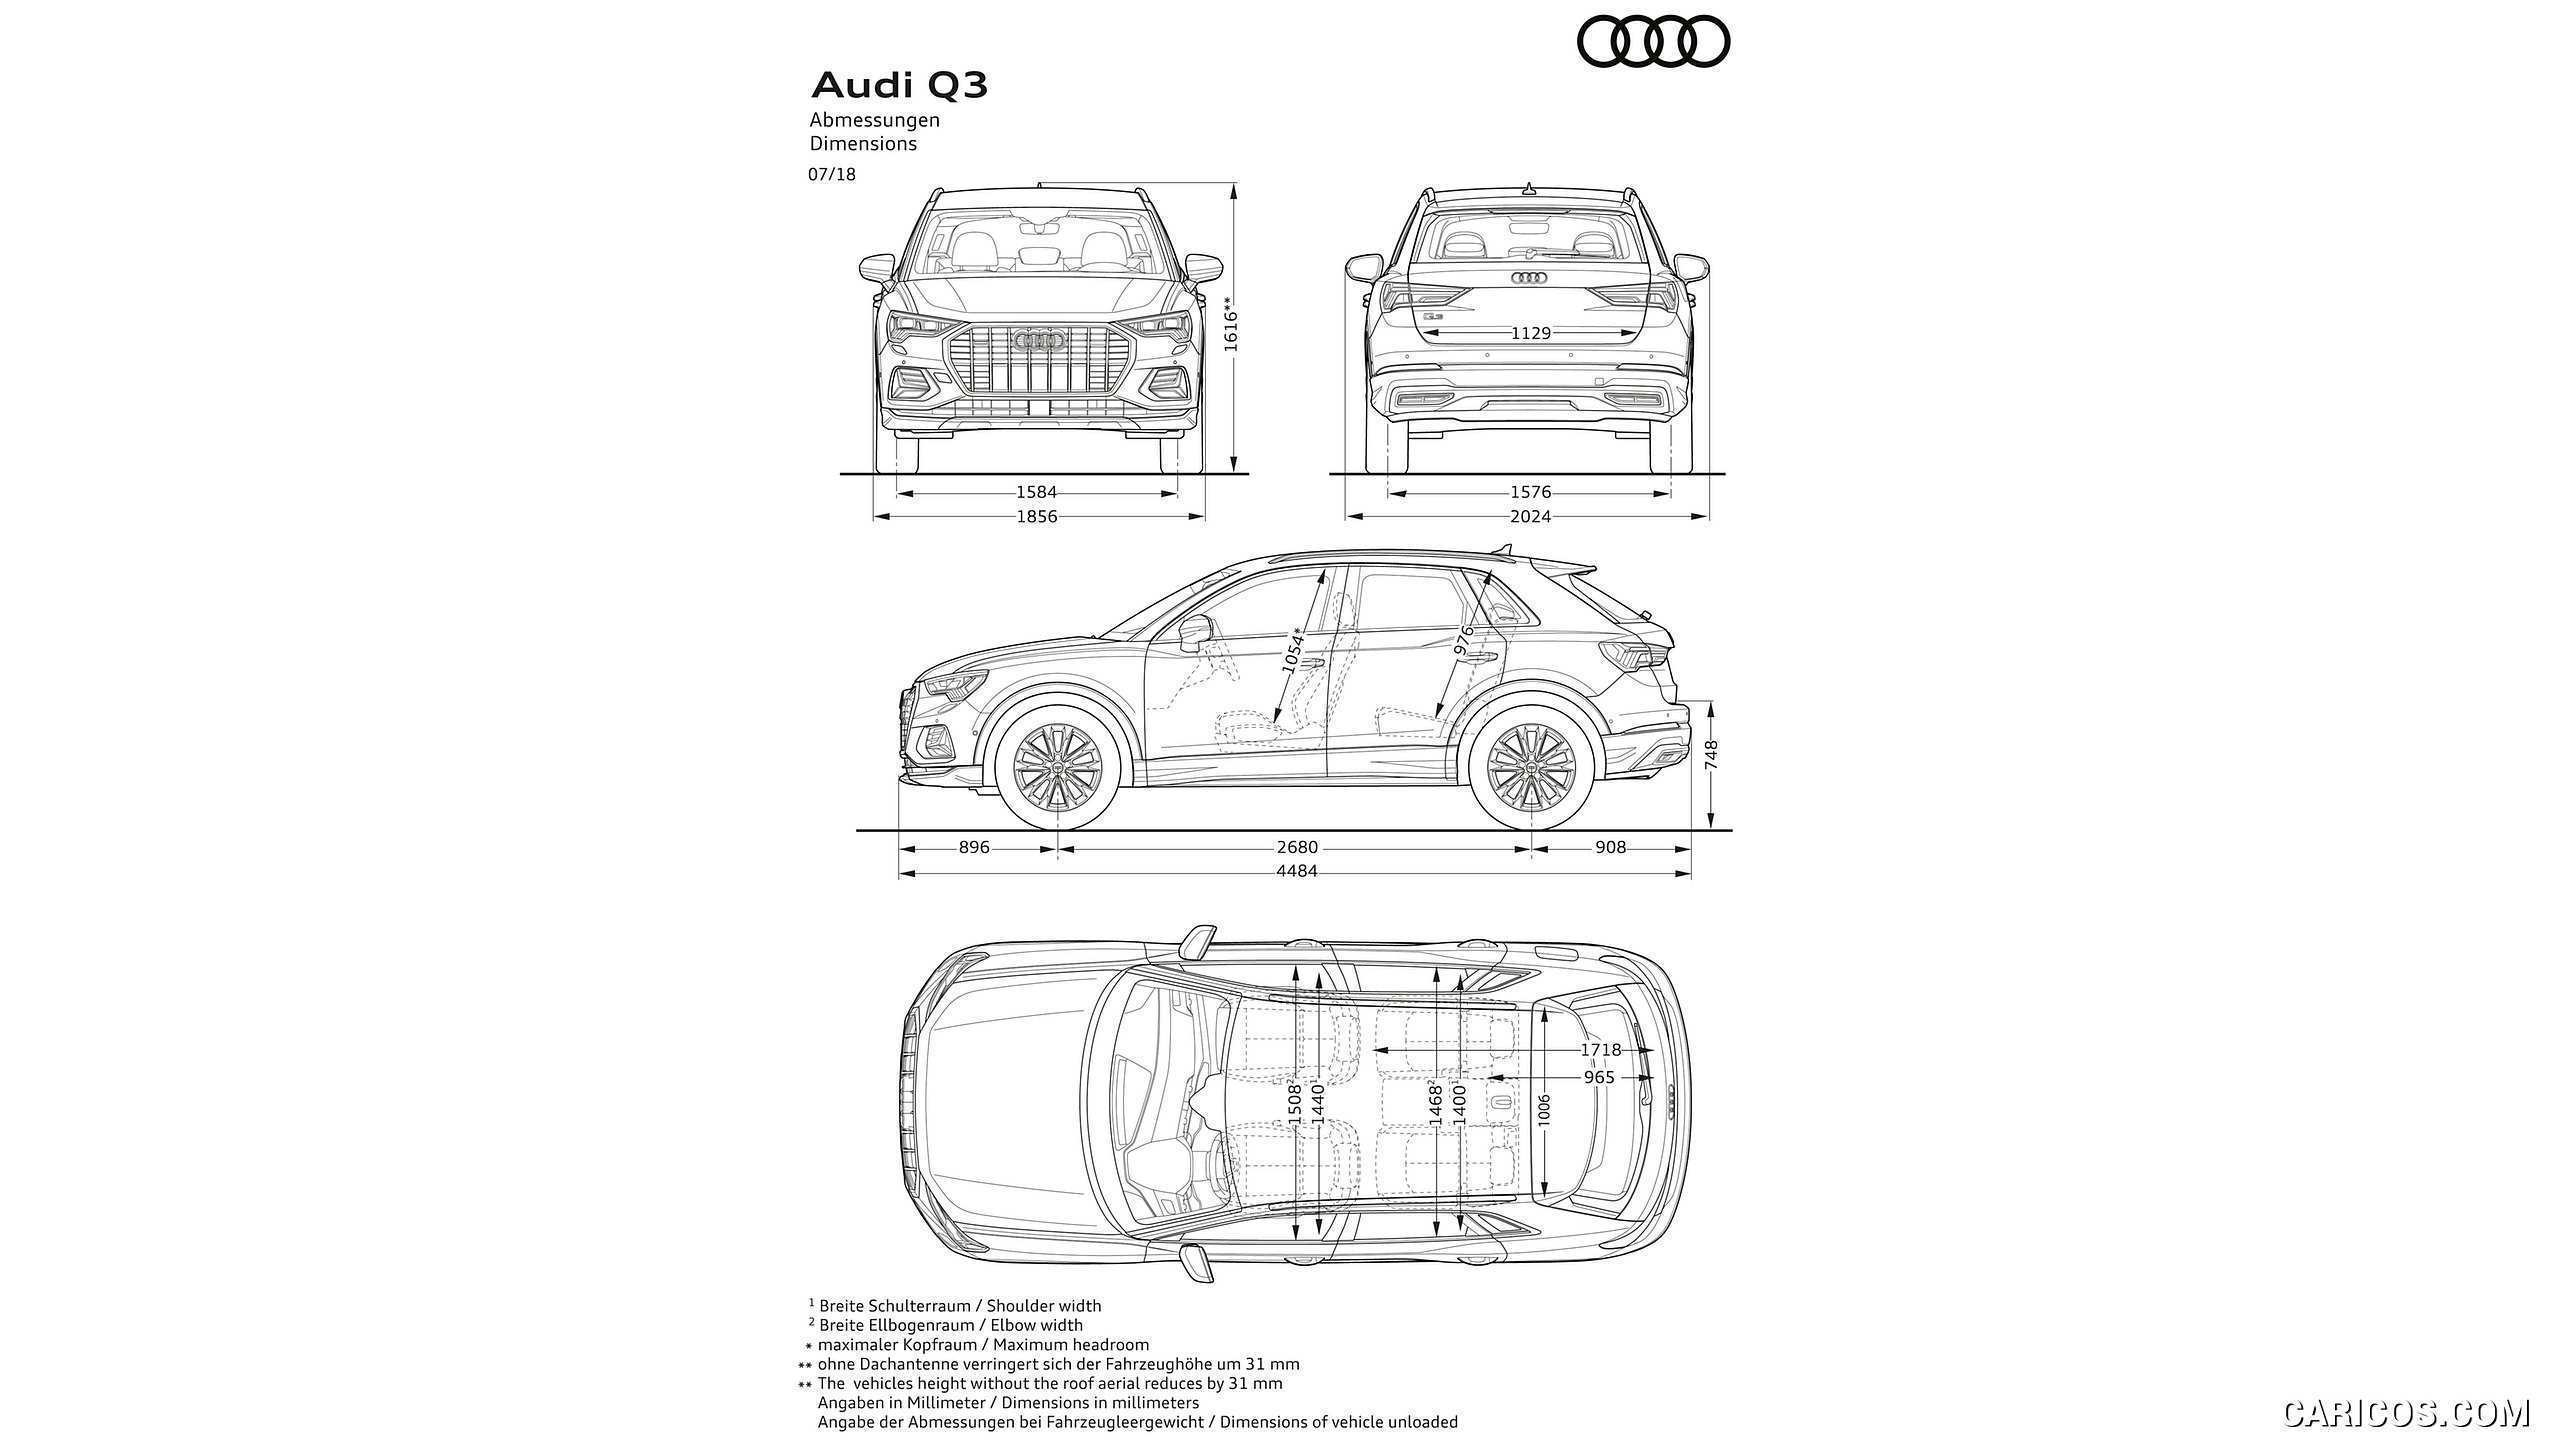 61 Concept of 2019 Audi Q3 Dimensions Research New by 2019 Audi Q3 Dimensions